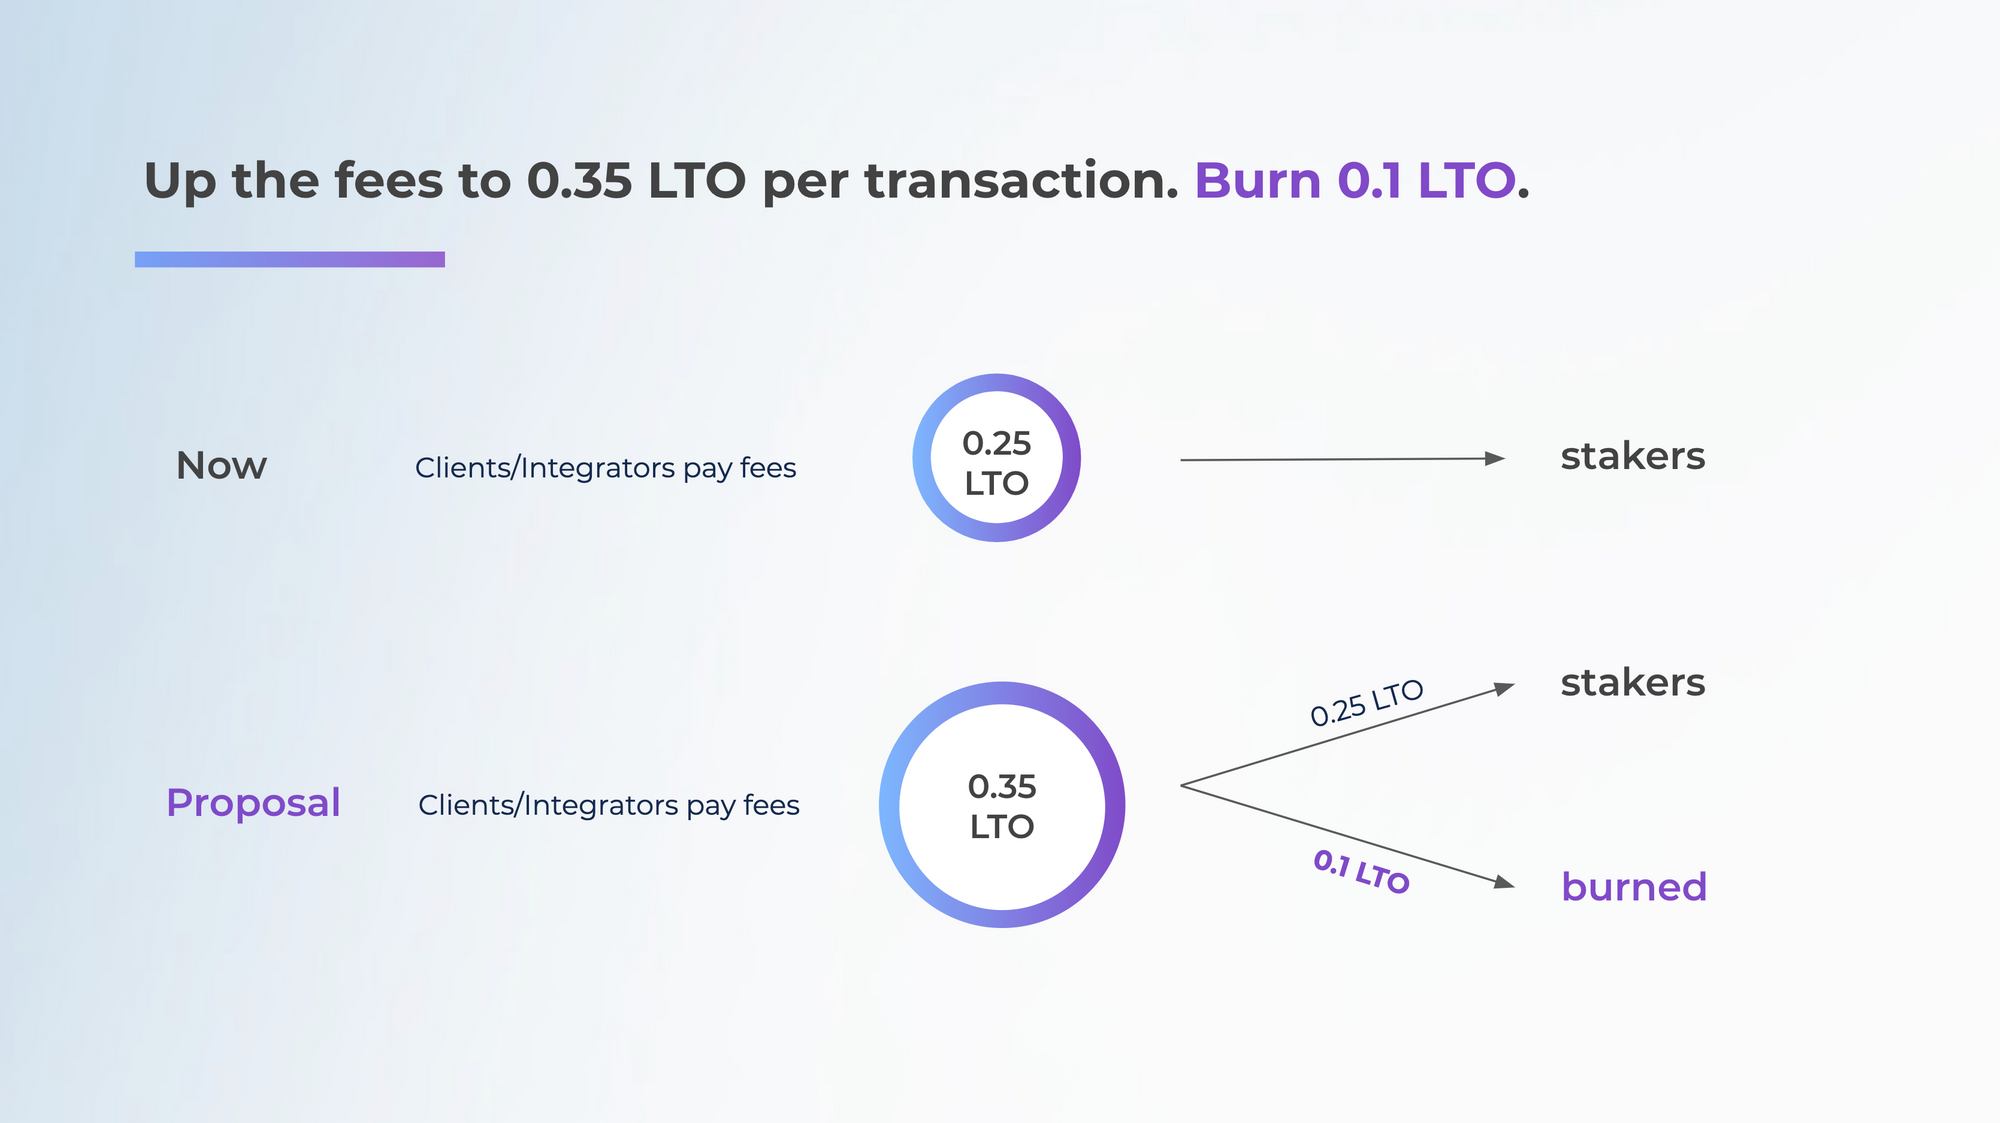 28.5% of the fees burned. In case the price per LTO goes up too high, the network will be able to vote for the fee reduction, with the burning either adjusted or staying the same. This is a dynamic feature.